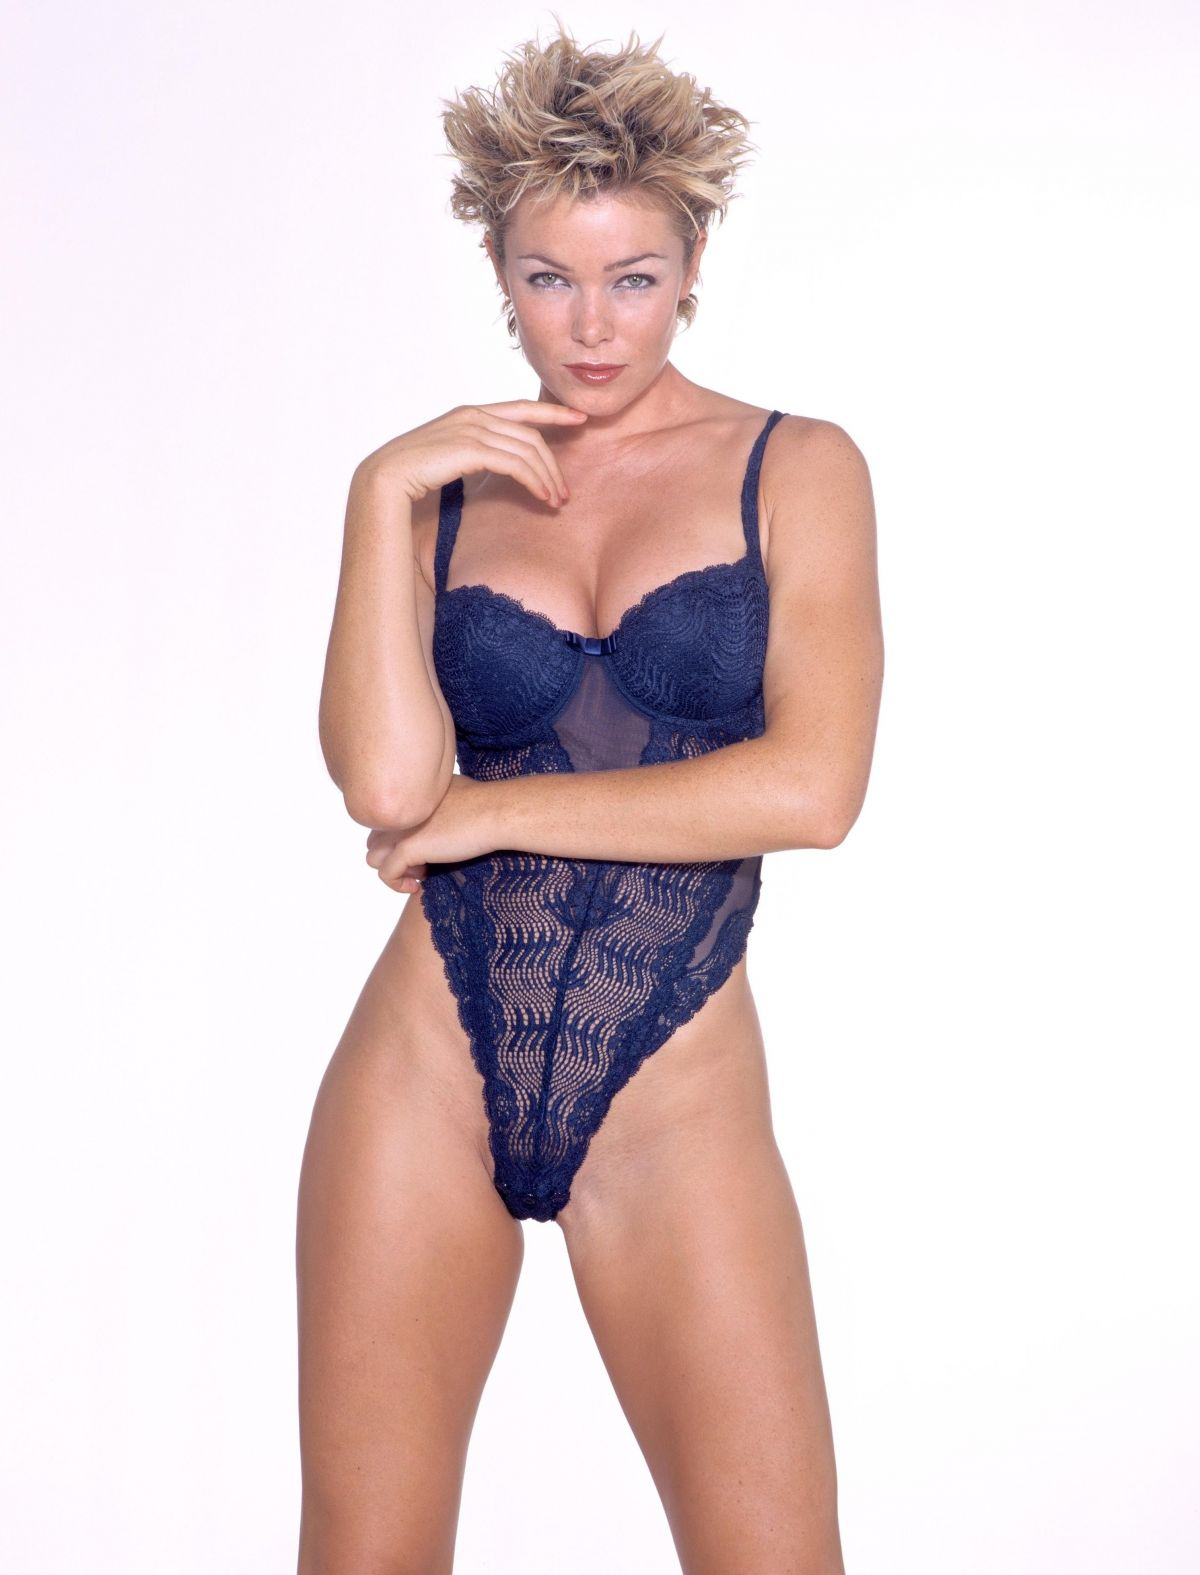 Nell McAndrew naked (33 pics), leaked Tits, YouTube, see through 2020